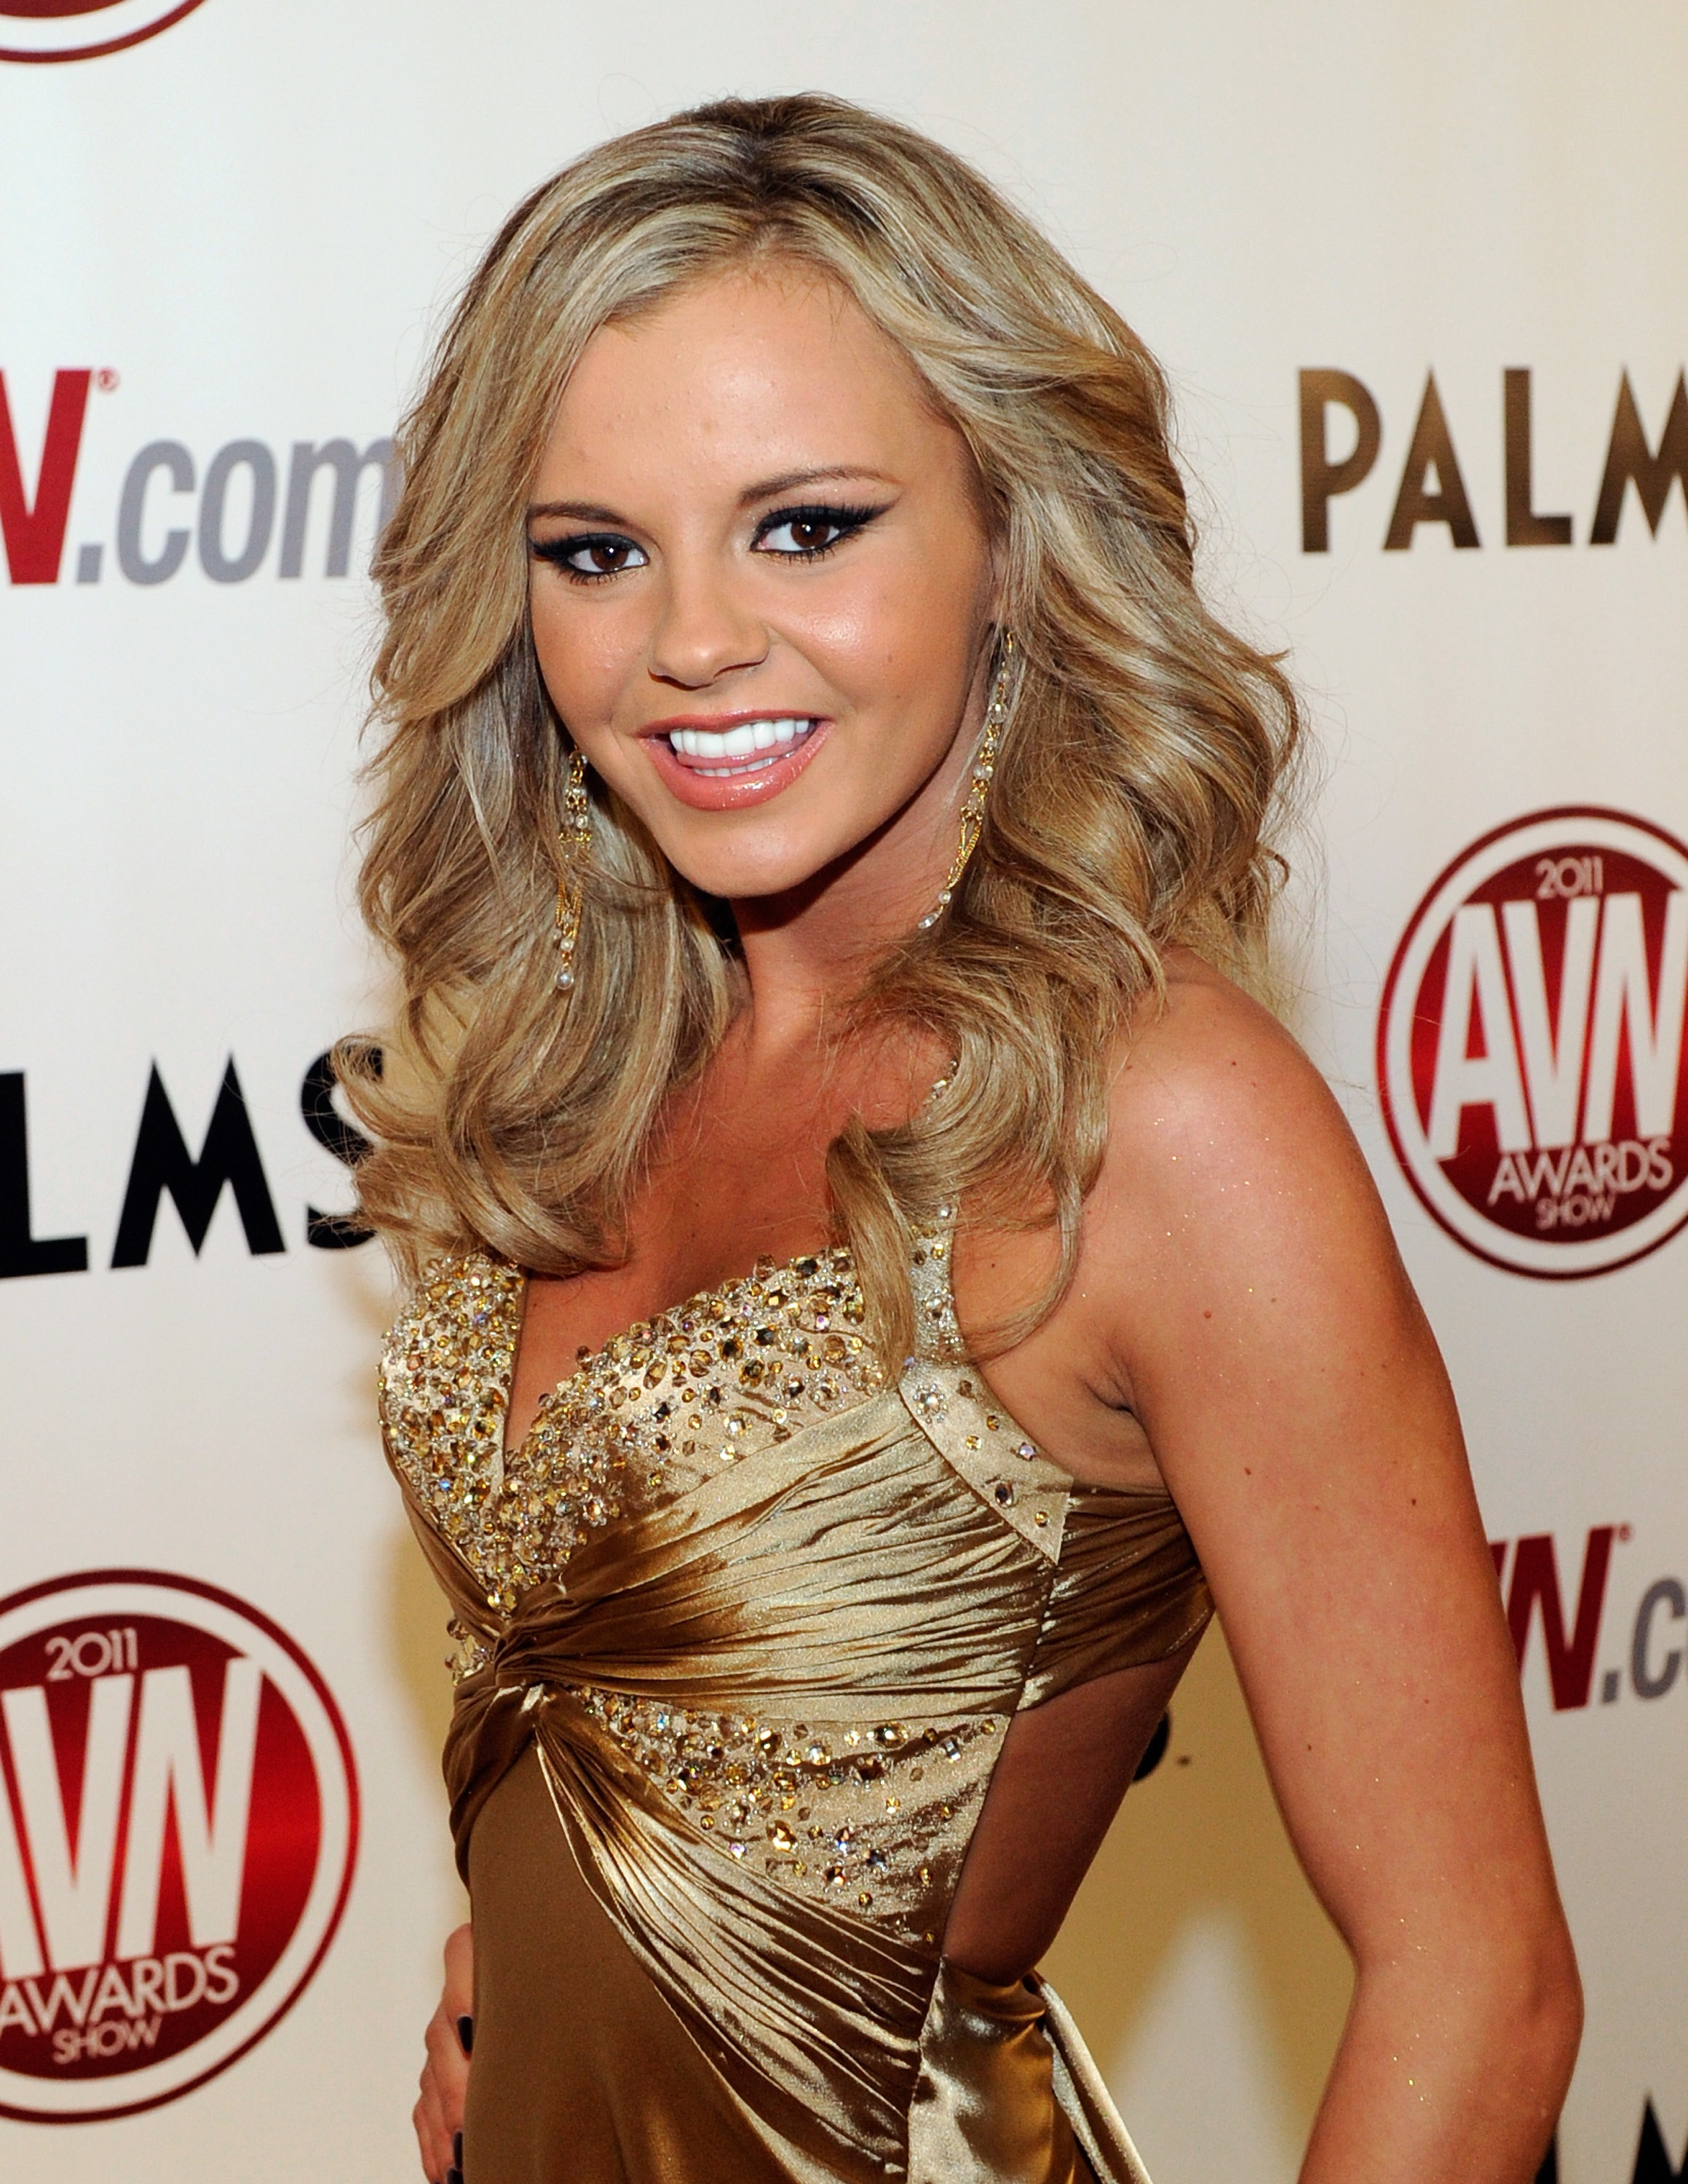 bree olson, ex-porn star, describes hardships after leaving adult